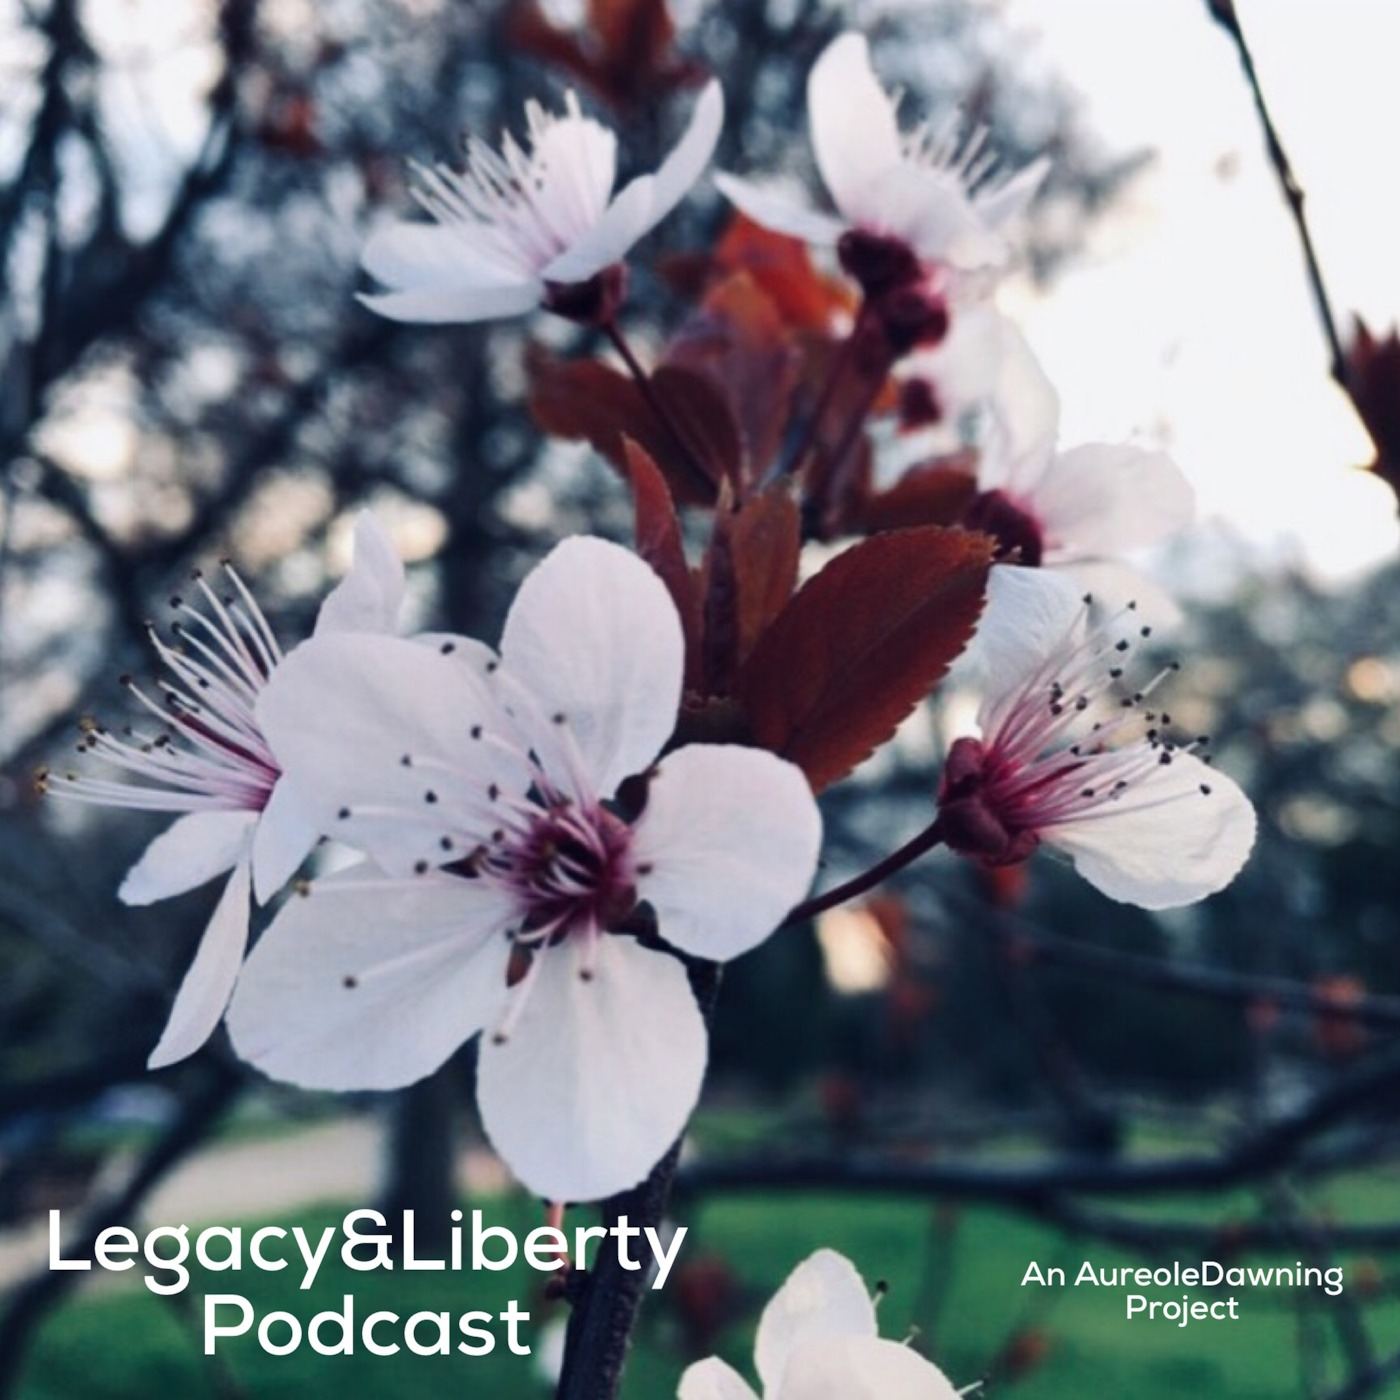 Legacy&Liberty Podcast